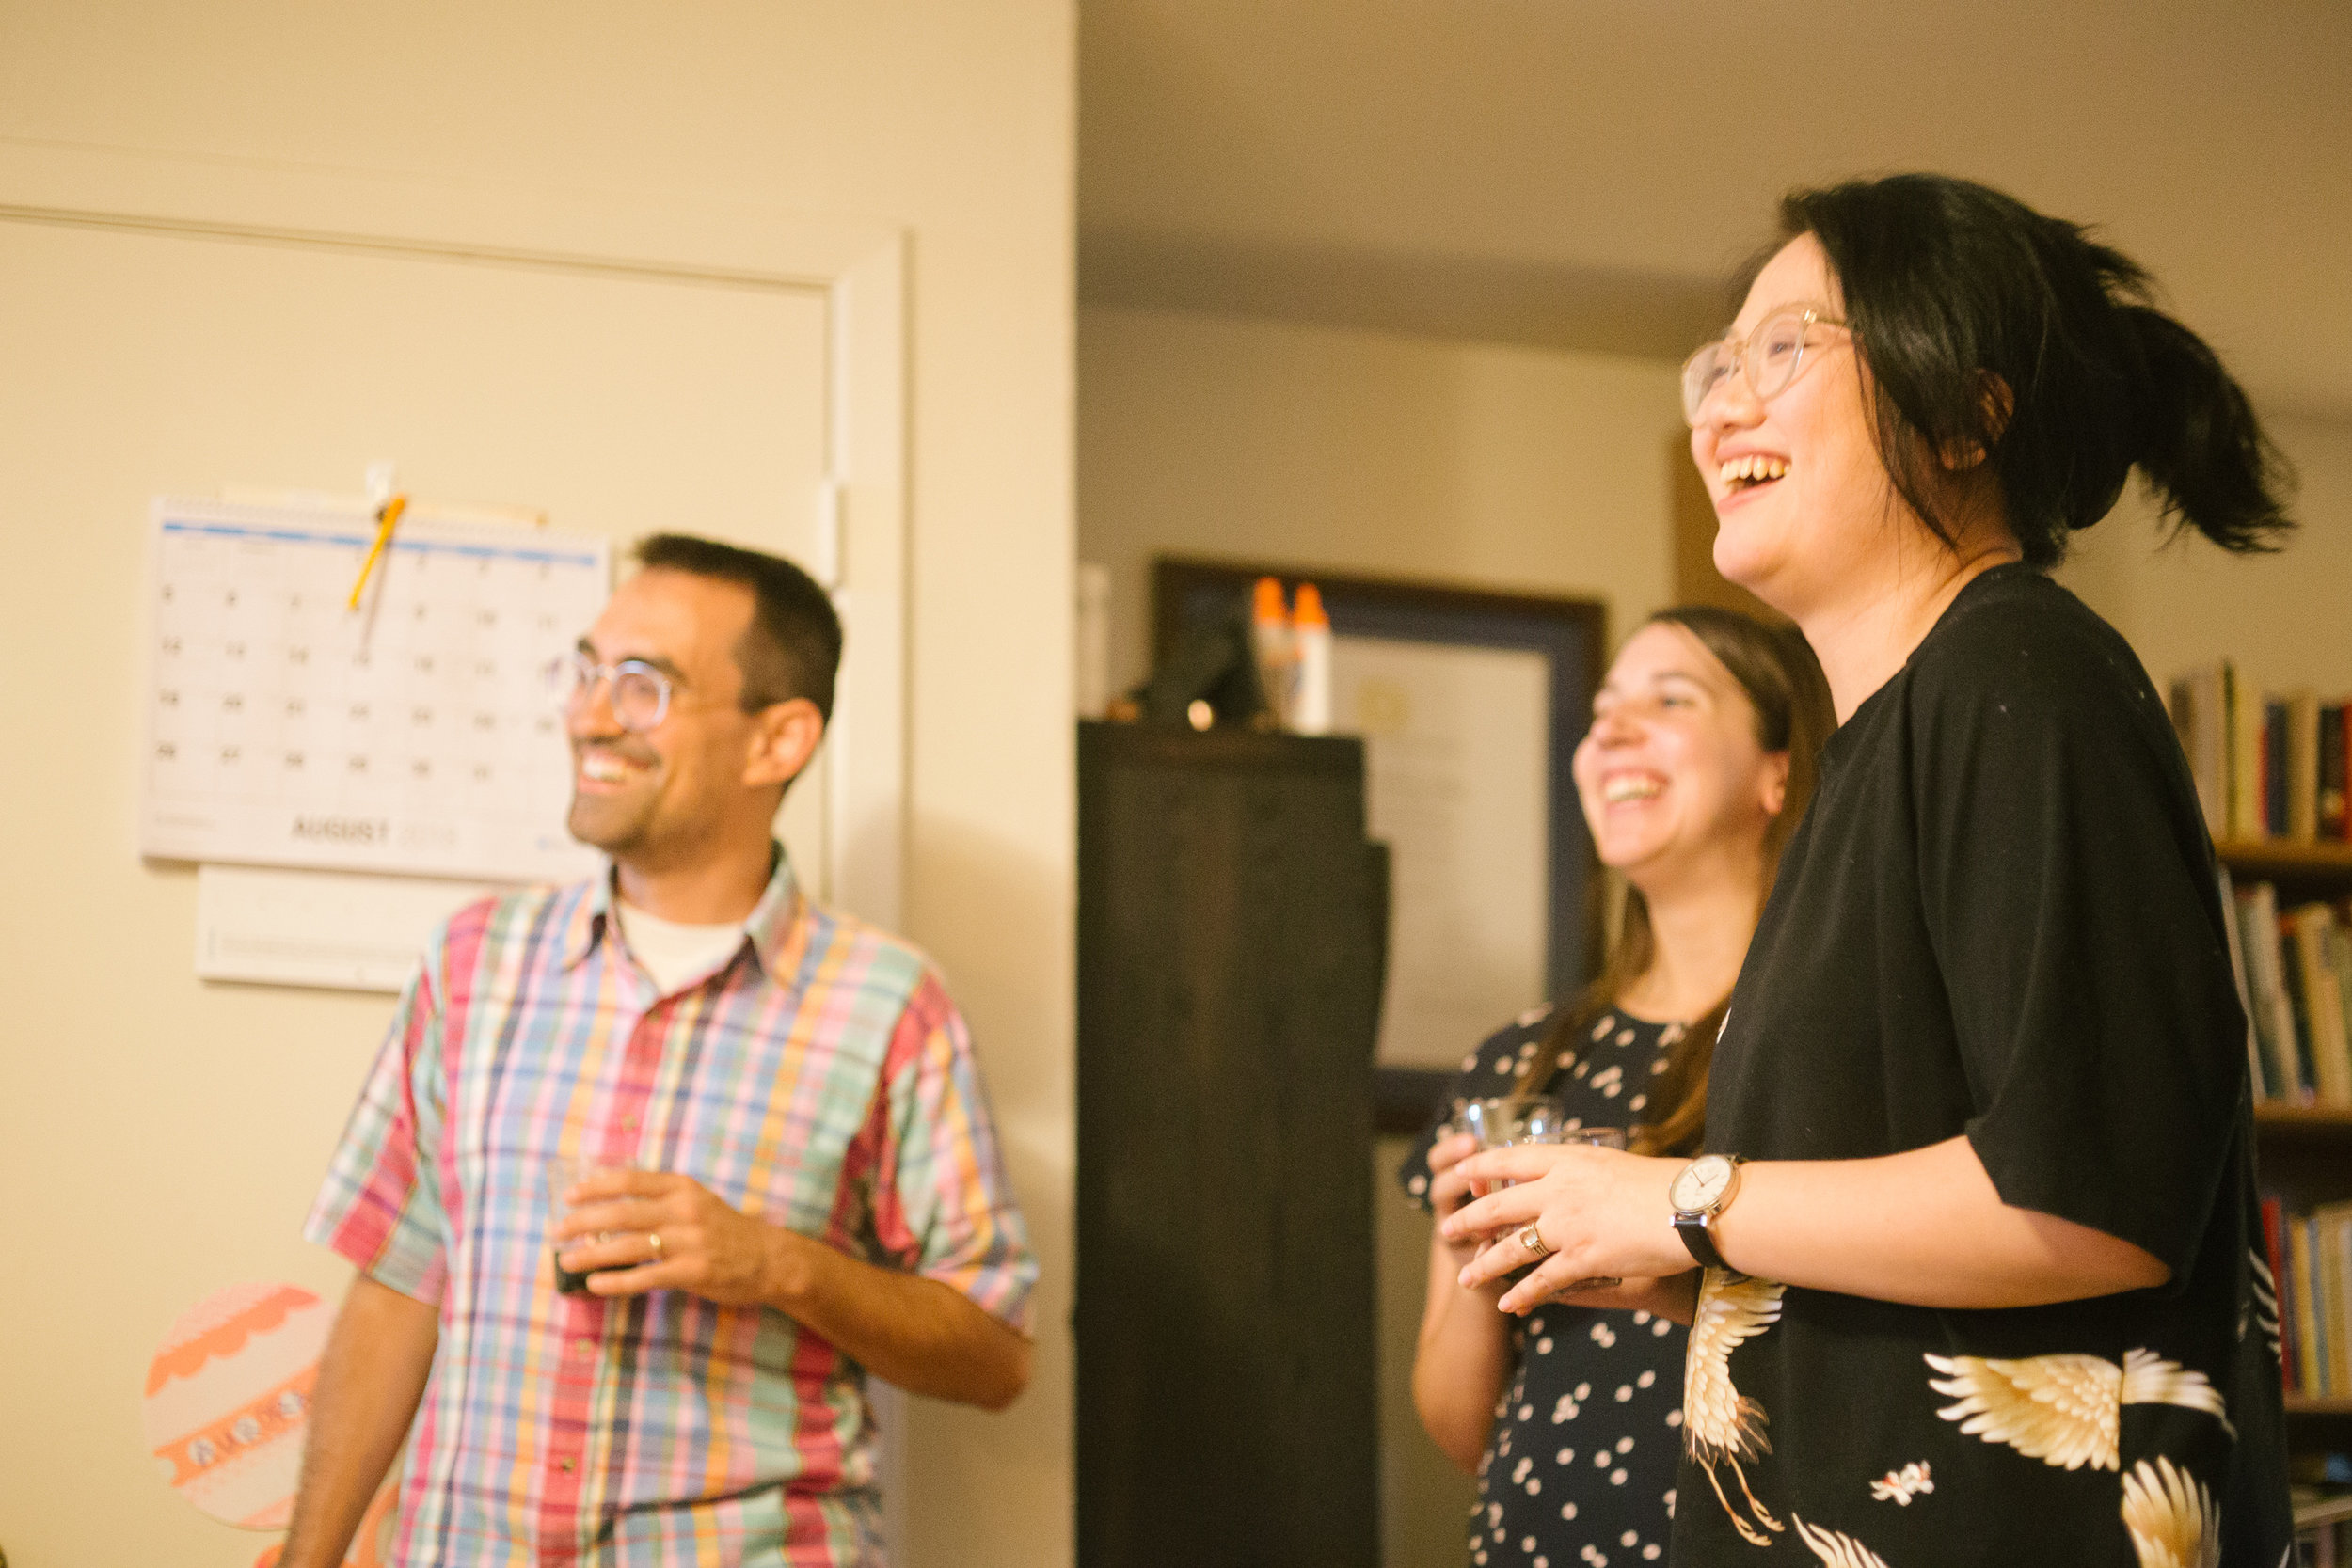 Ben, Lanny, and Erica sharing a laugh at our team welcome dinner hosted by Bonnie and Ben. Courtesy of Wanjun Zhang. August 24th, 2018.